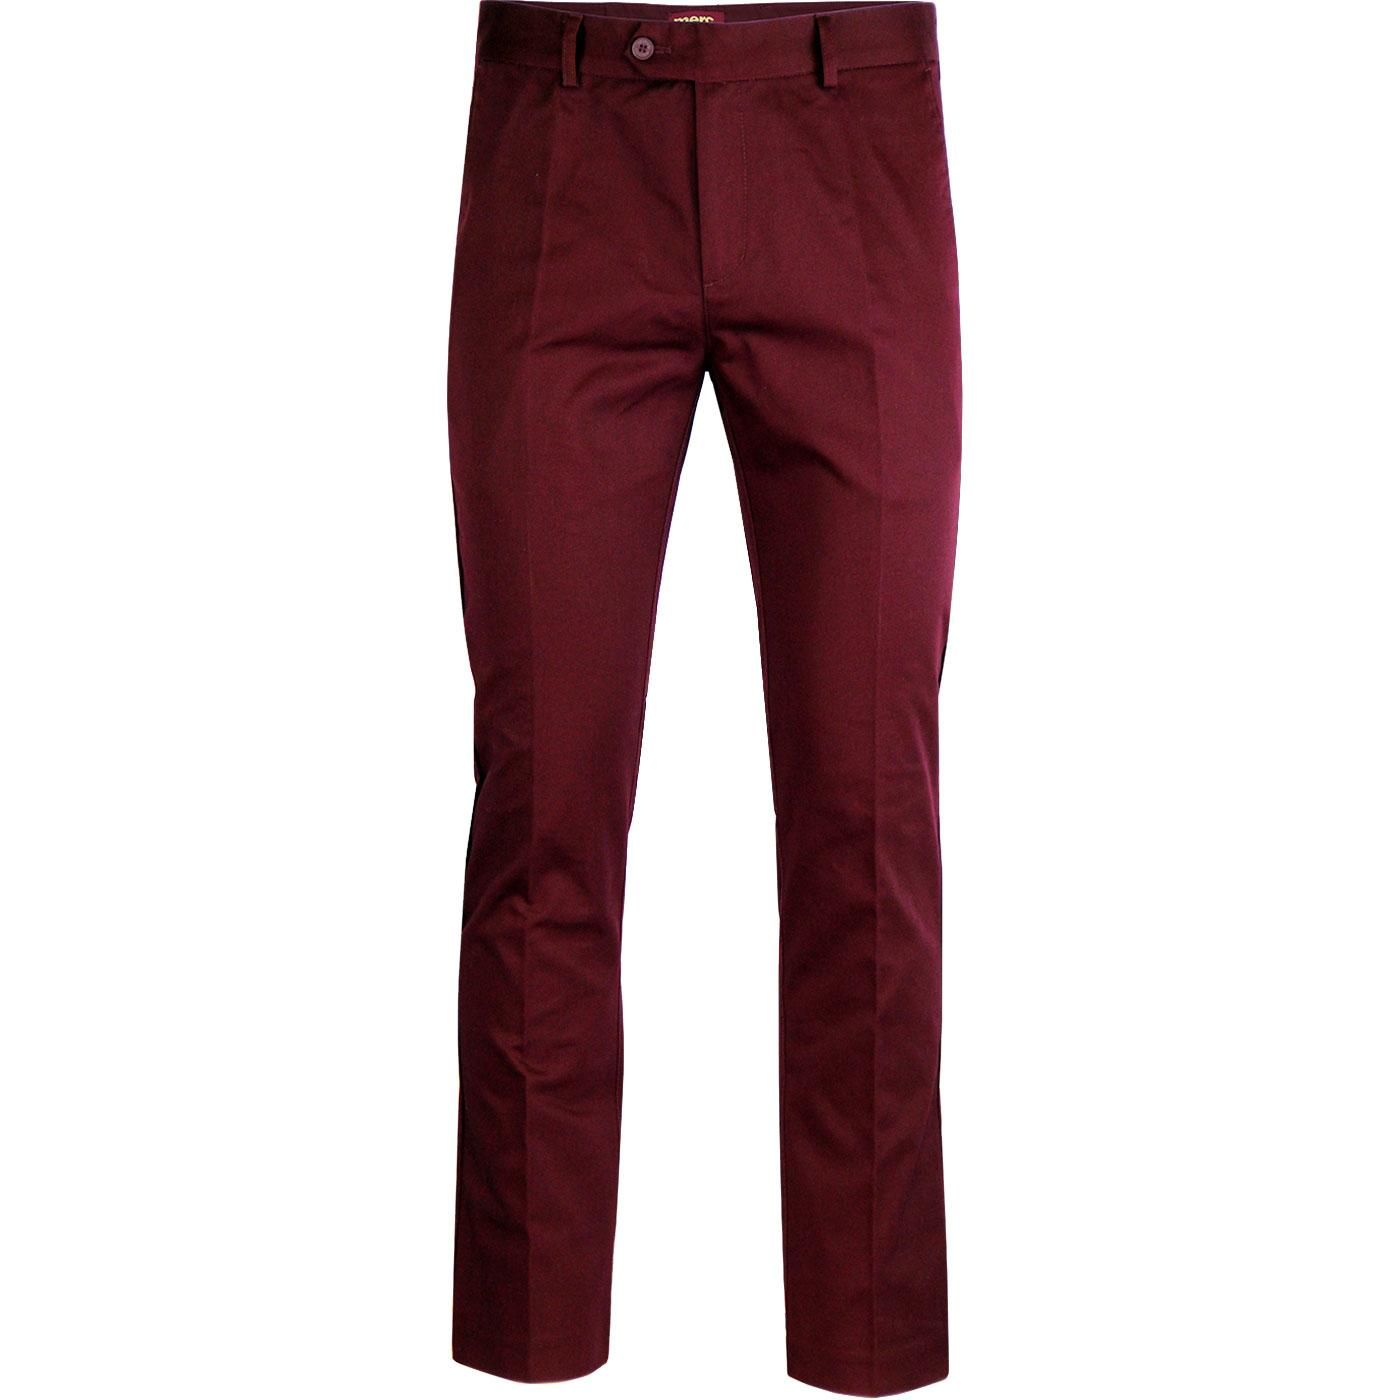 Winston MERC 60s Mod Sta Press Retro Trousers (W)